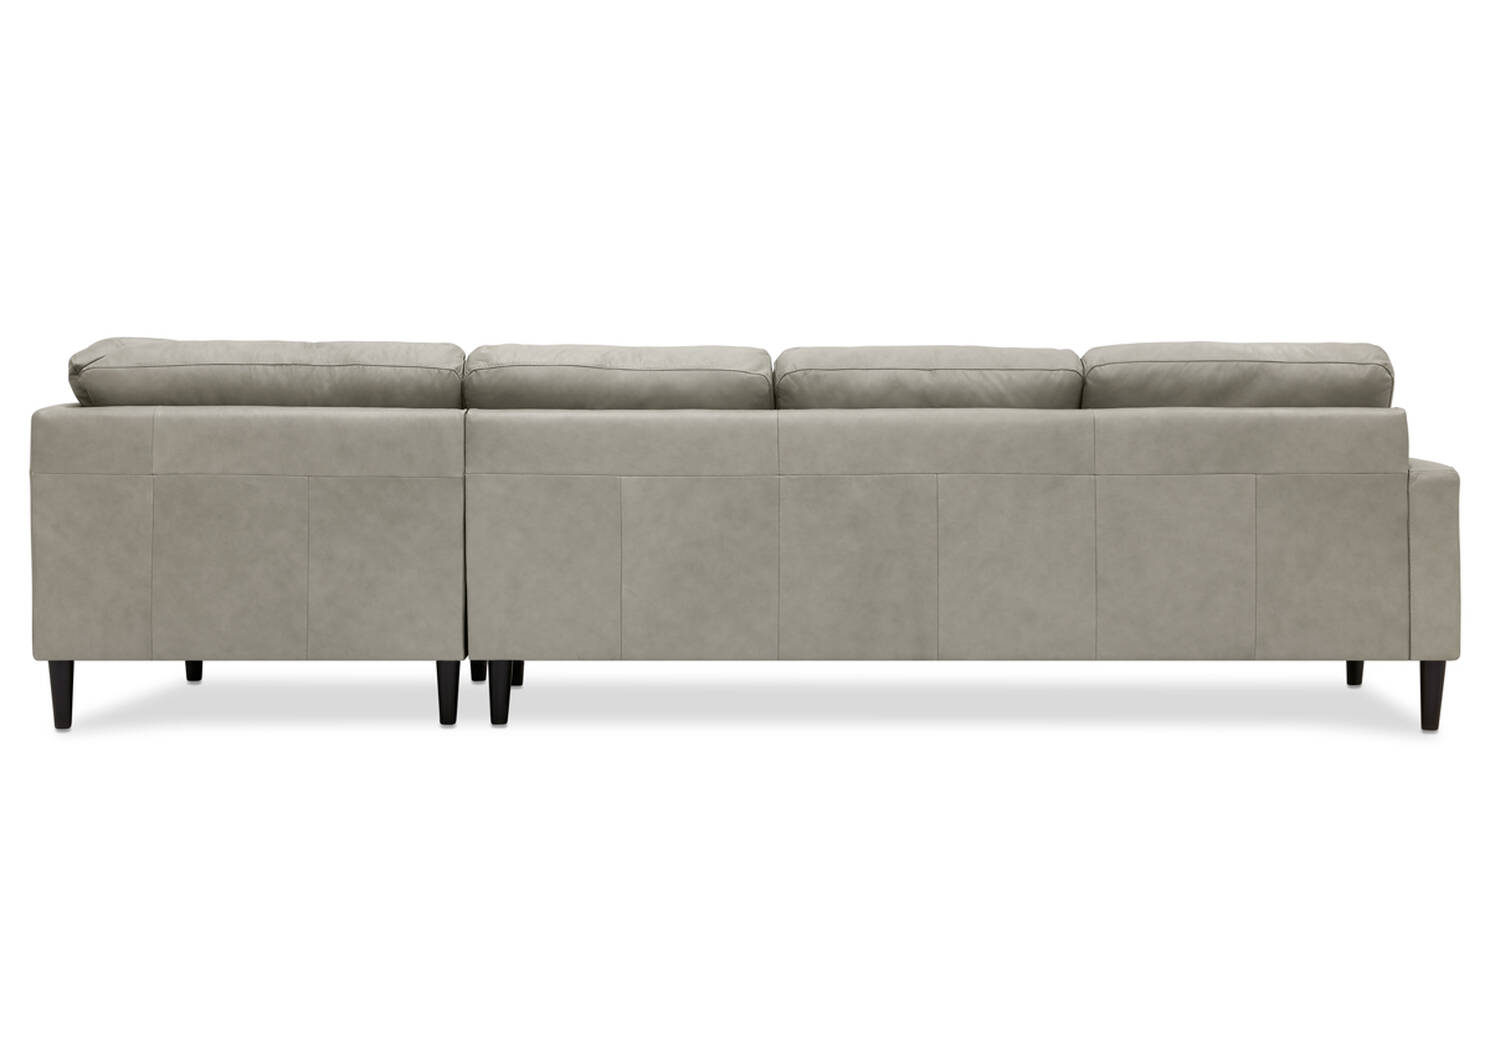 Savoy Custom Leather 2PC Sectional